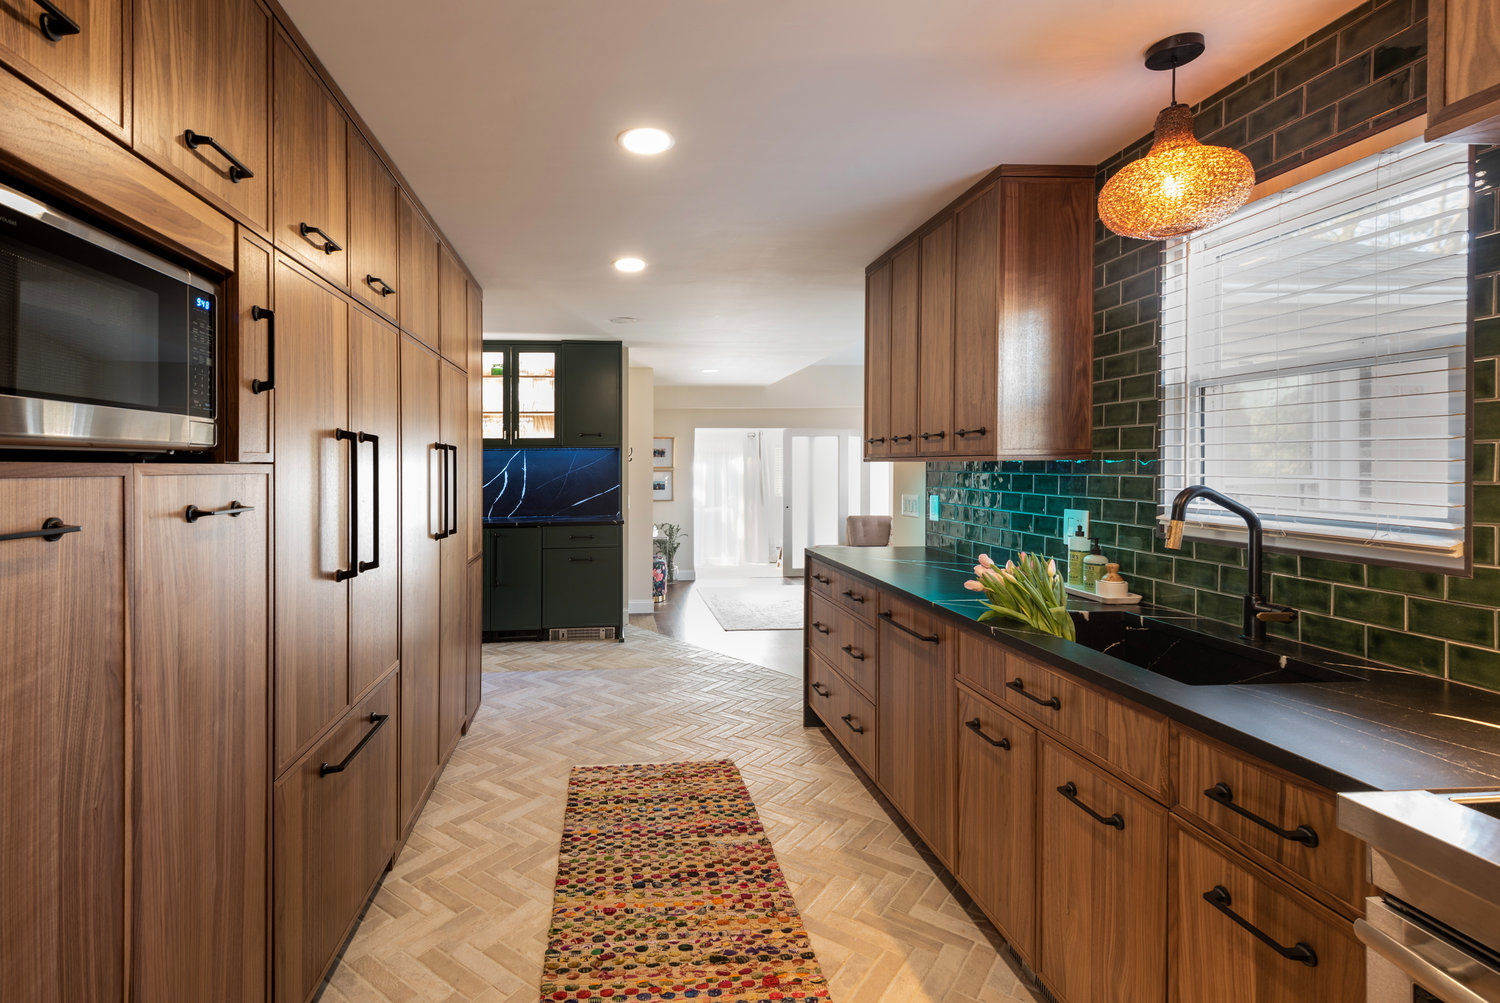 The emerald green ceramic tile backsplash is stunning against wood features